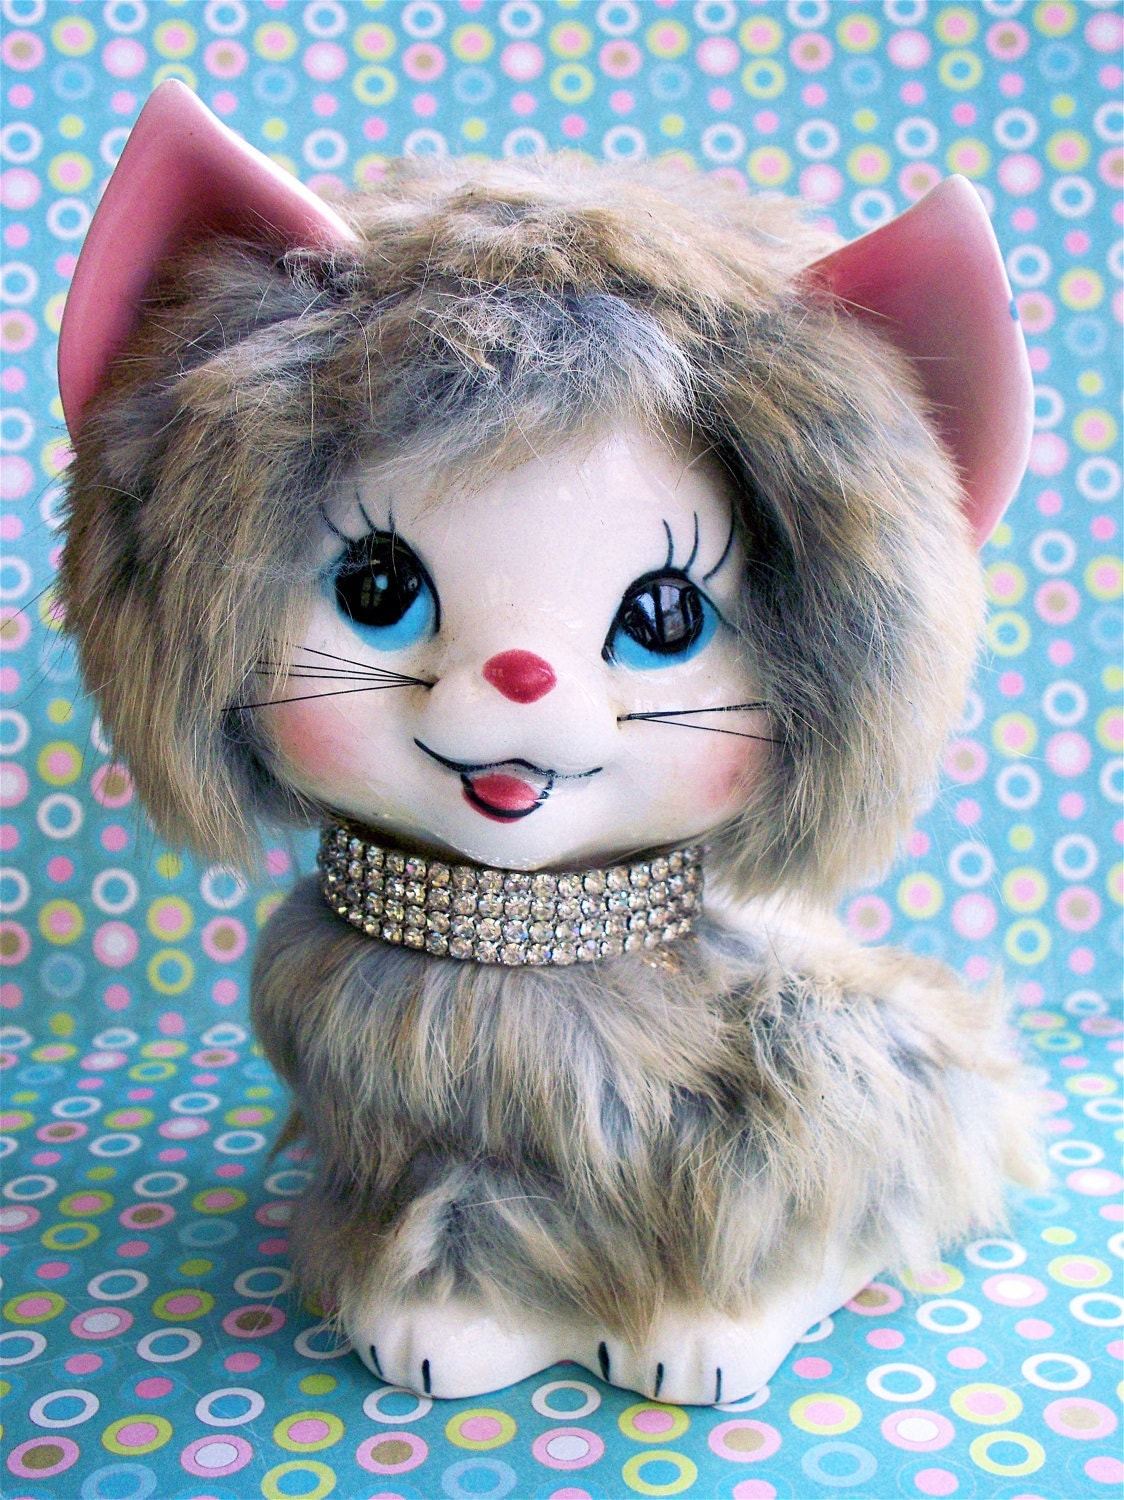 Kitschy  Gitschy Cute Vintage Fluffy Kitty Cat Kitten Furr Covered Ceramic  Figurine with Diamond Collar